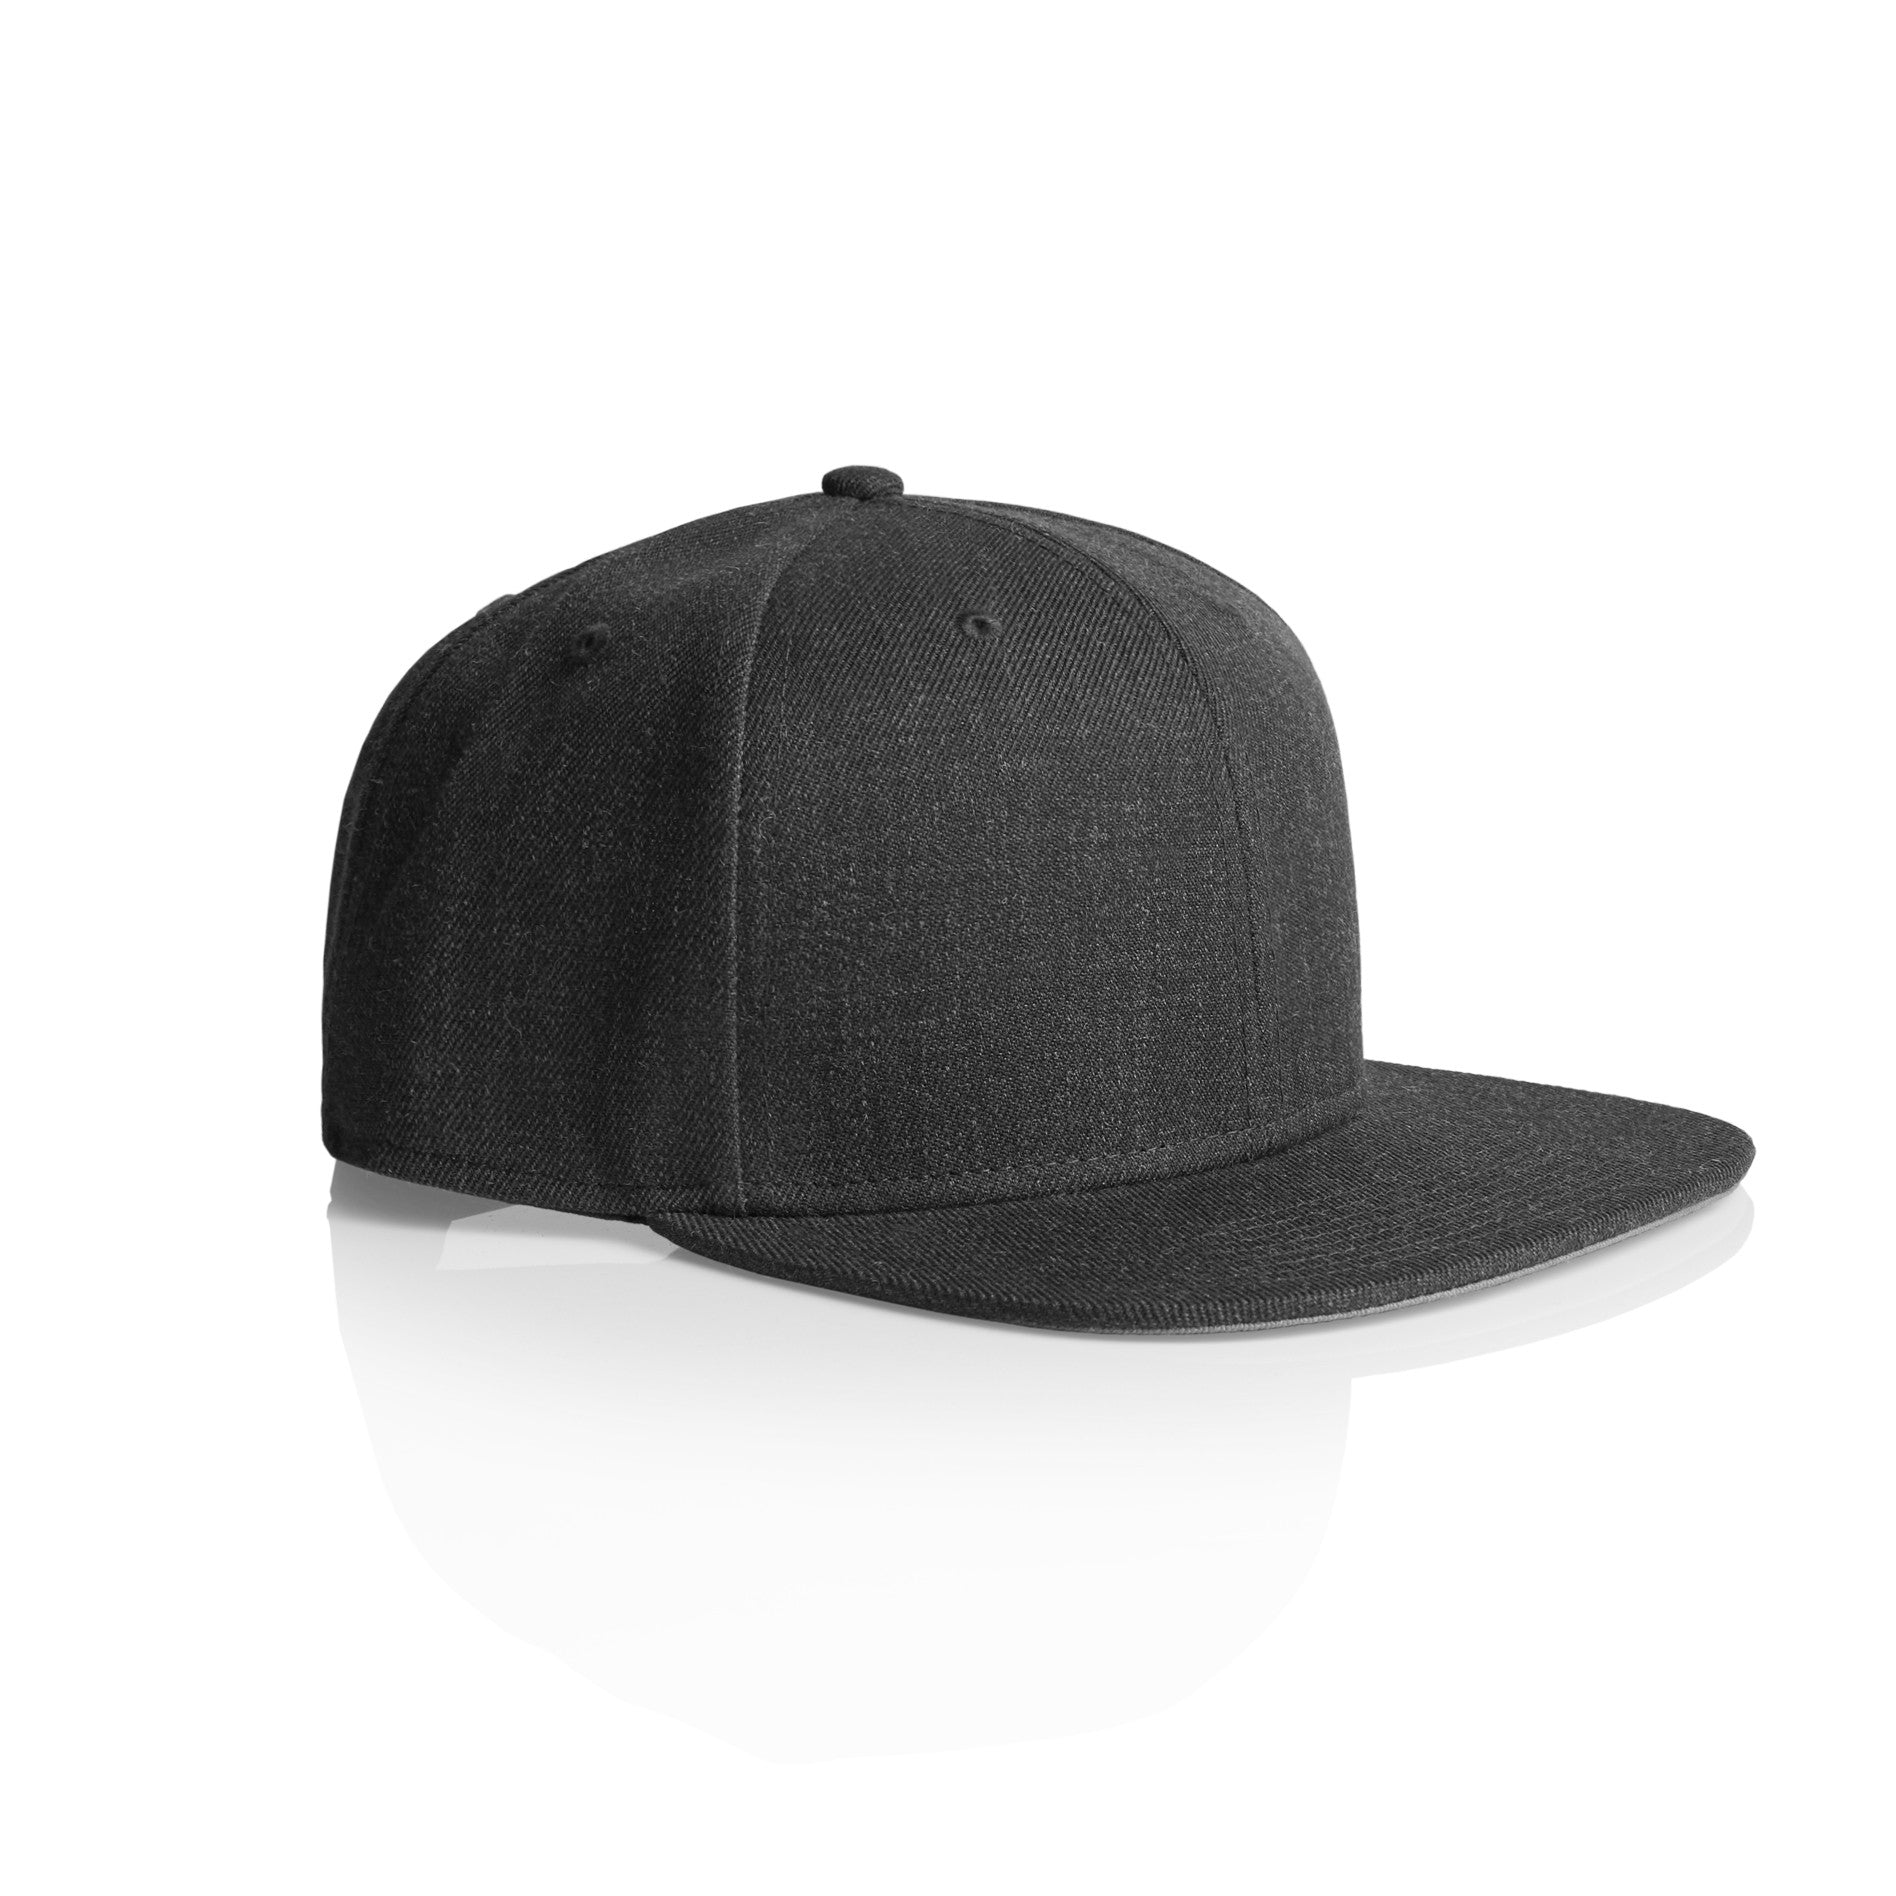 MENS STOCK CAP